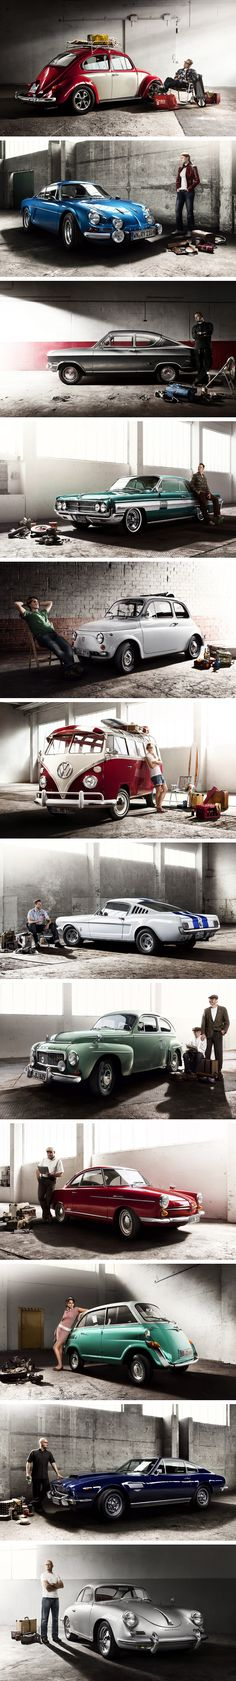 Retro Colleccion del Oldtimer Calendar por Mirko Frank // See, this is the kind of dream car calendar we need more of. Automotive Photography, Car Photography, Retro Cars, Vintage Cars, Retro Vintage, Volkswagen, American Graffiti, Cabriolet, Love Car